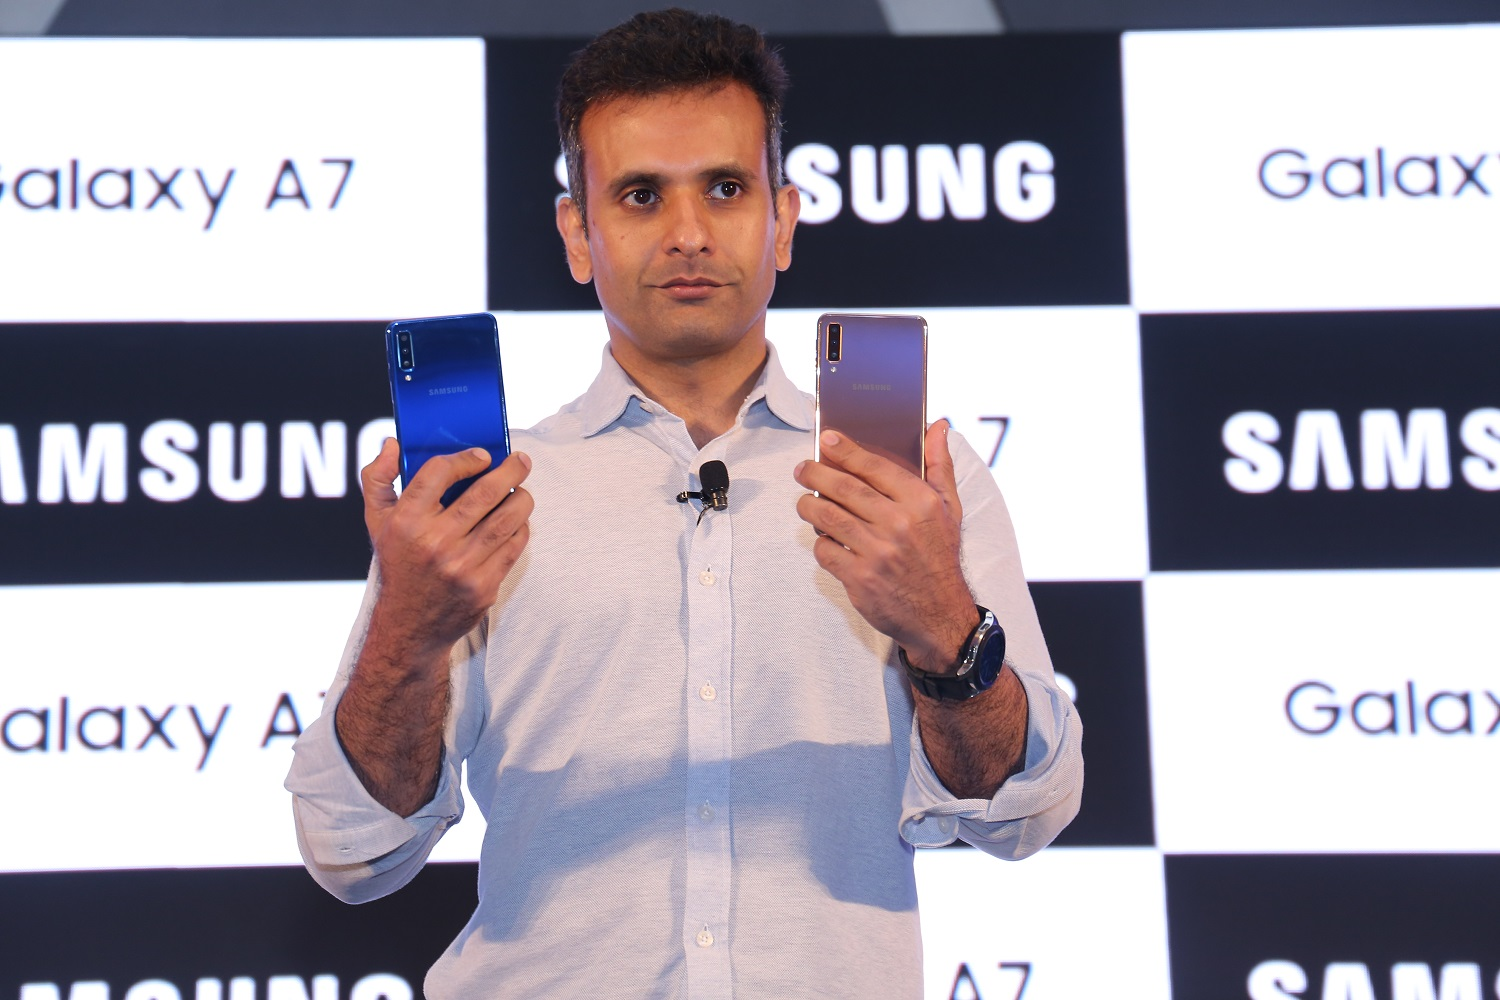 various colors 472cc f1c9b Samsung's First Triple Camera Smartphone Galaxy A7 Debuts in India ...